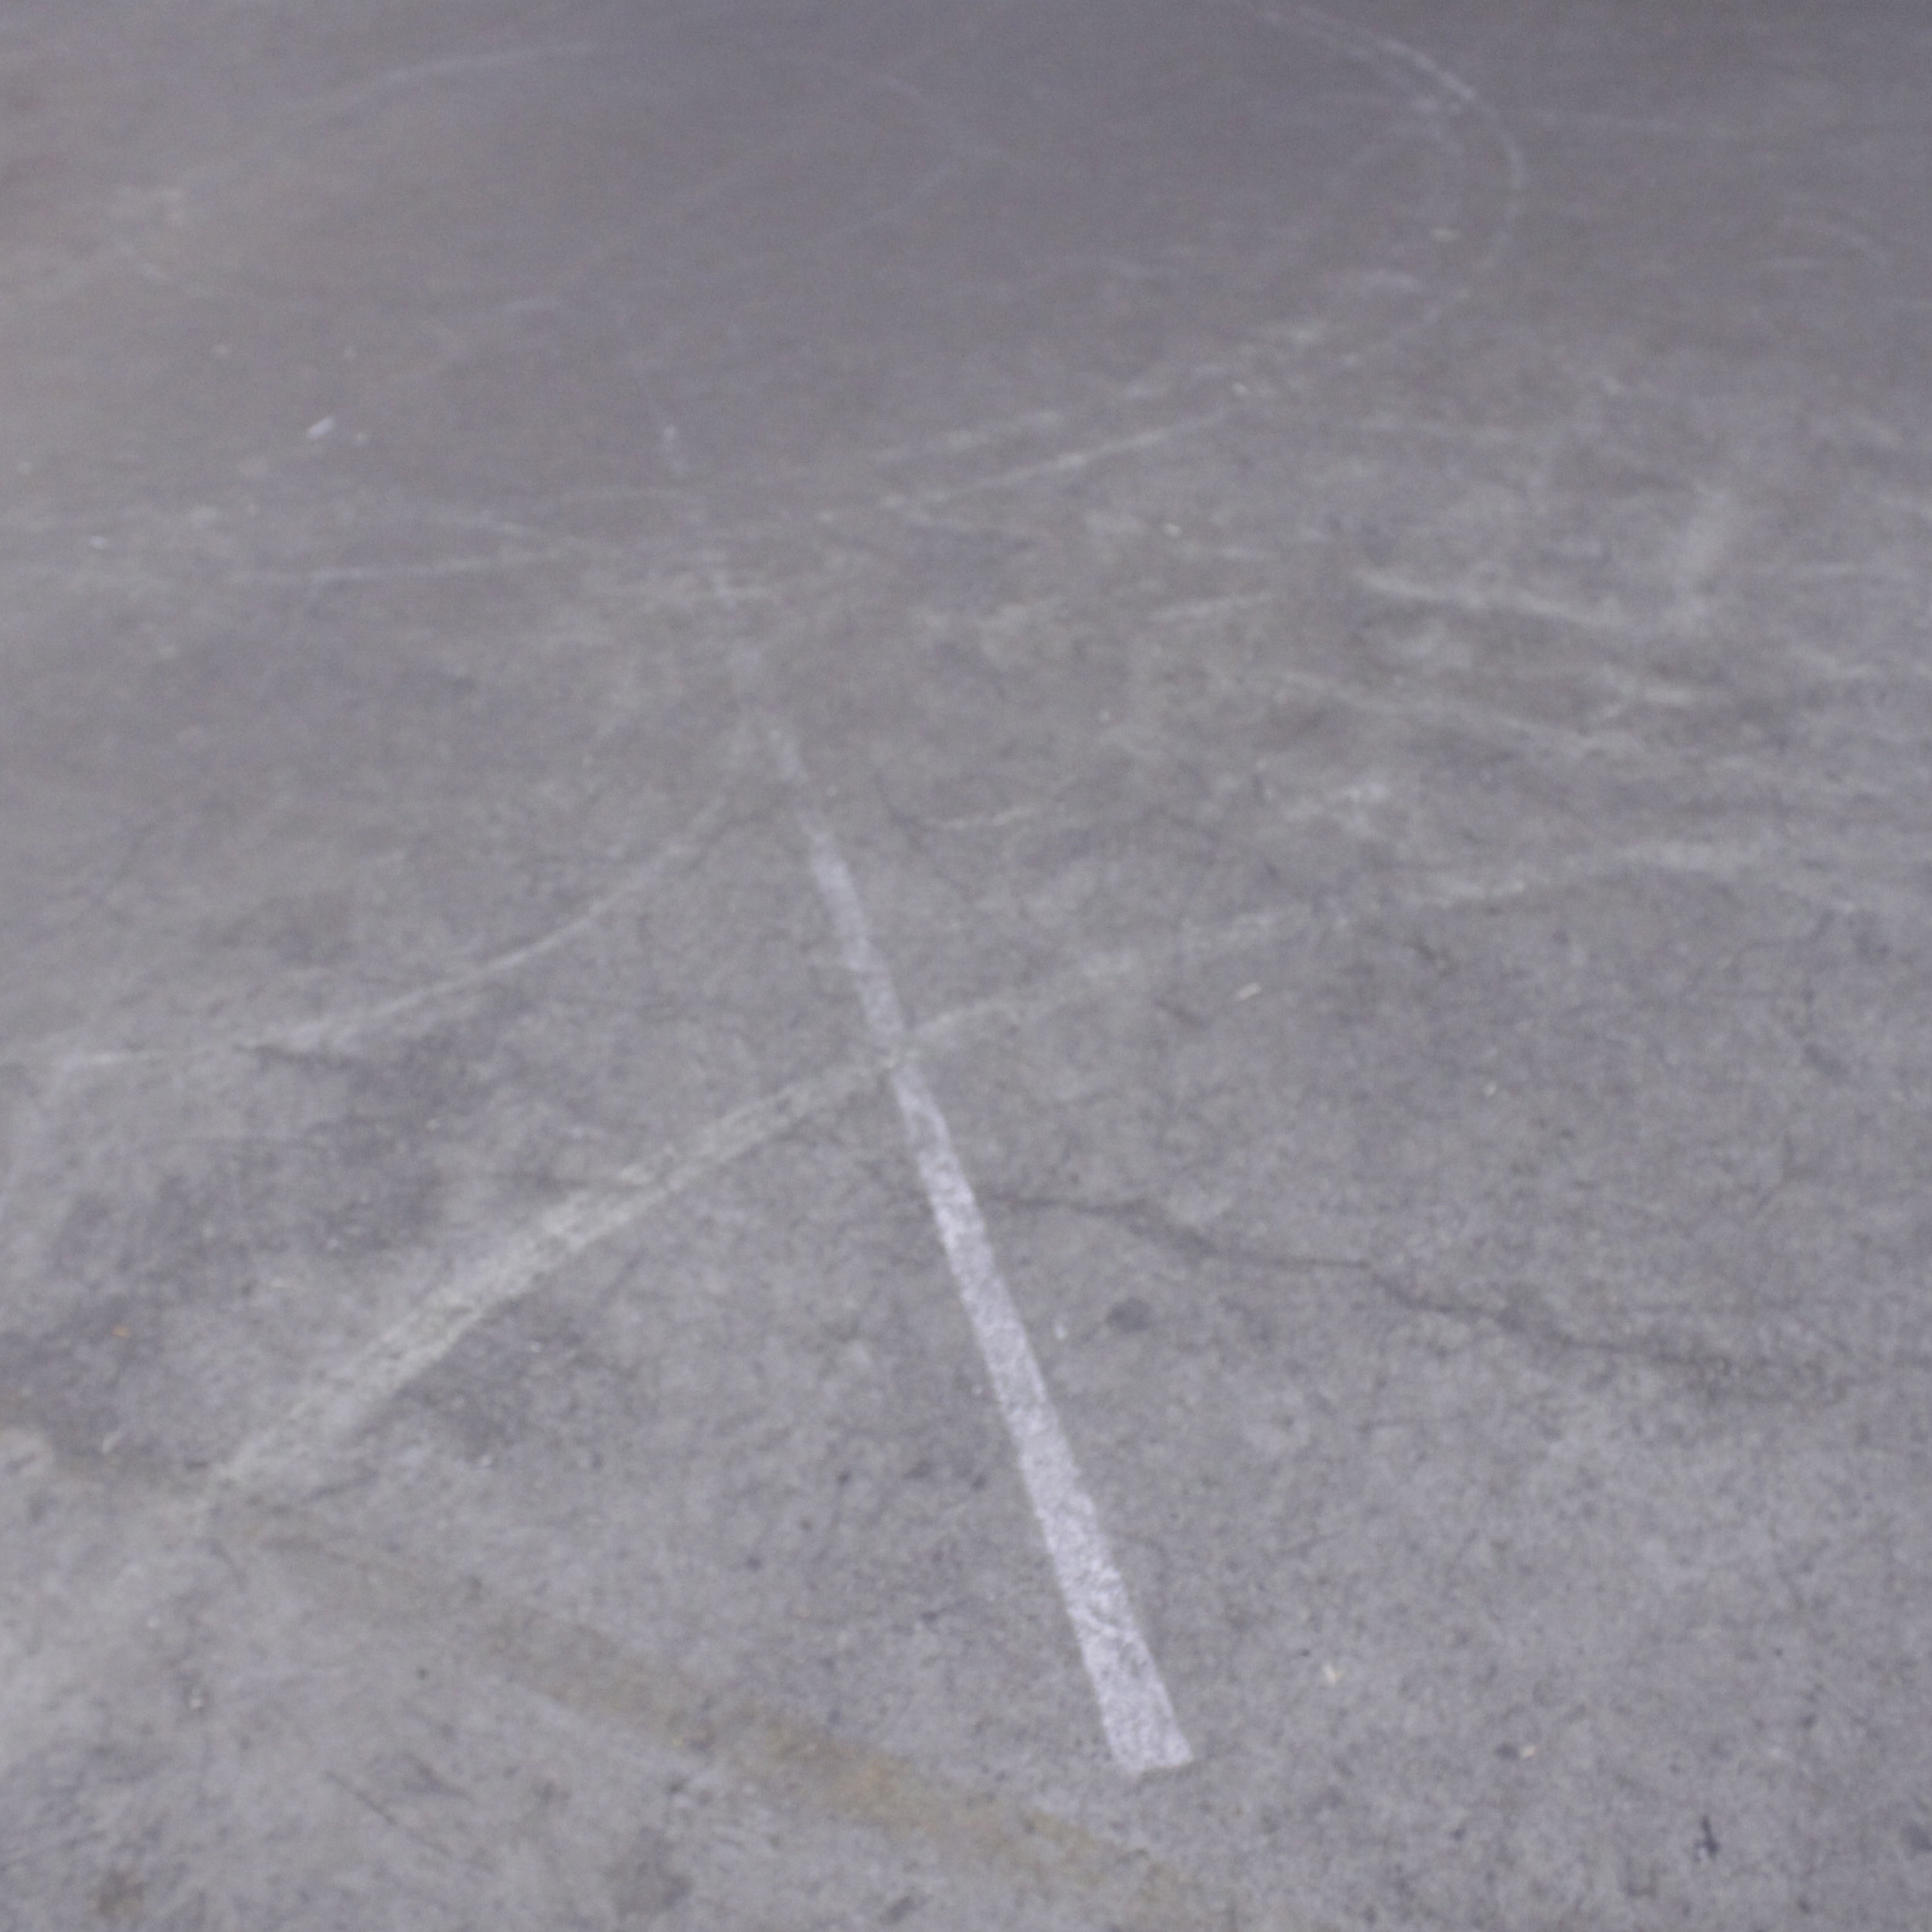 Revisiting the skatepark chalk drawings one week on.